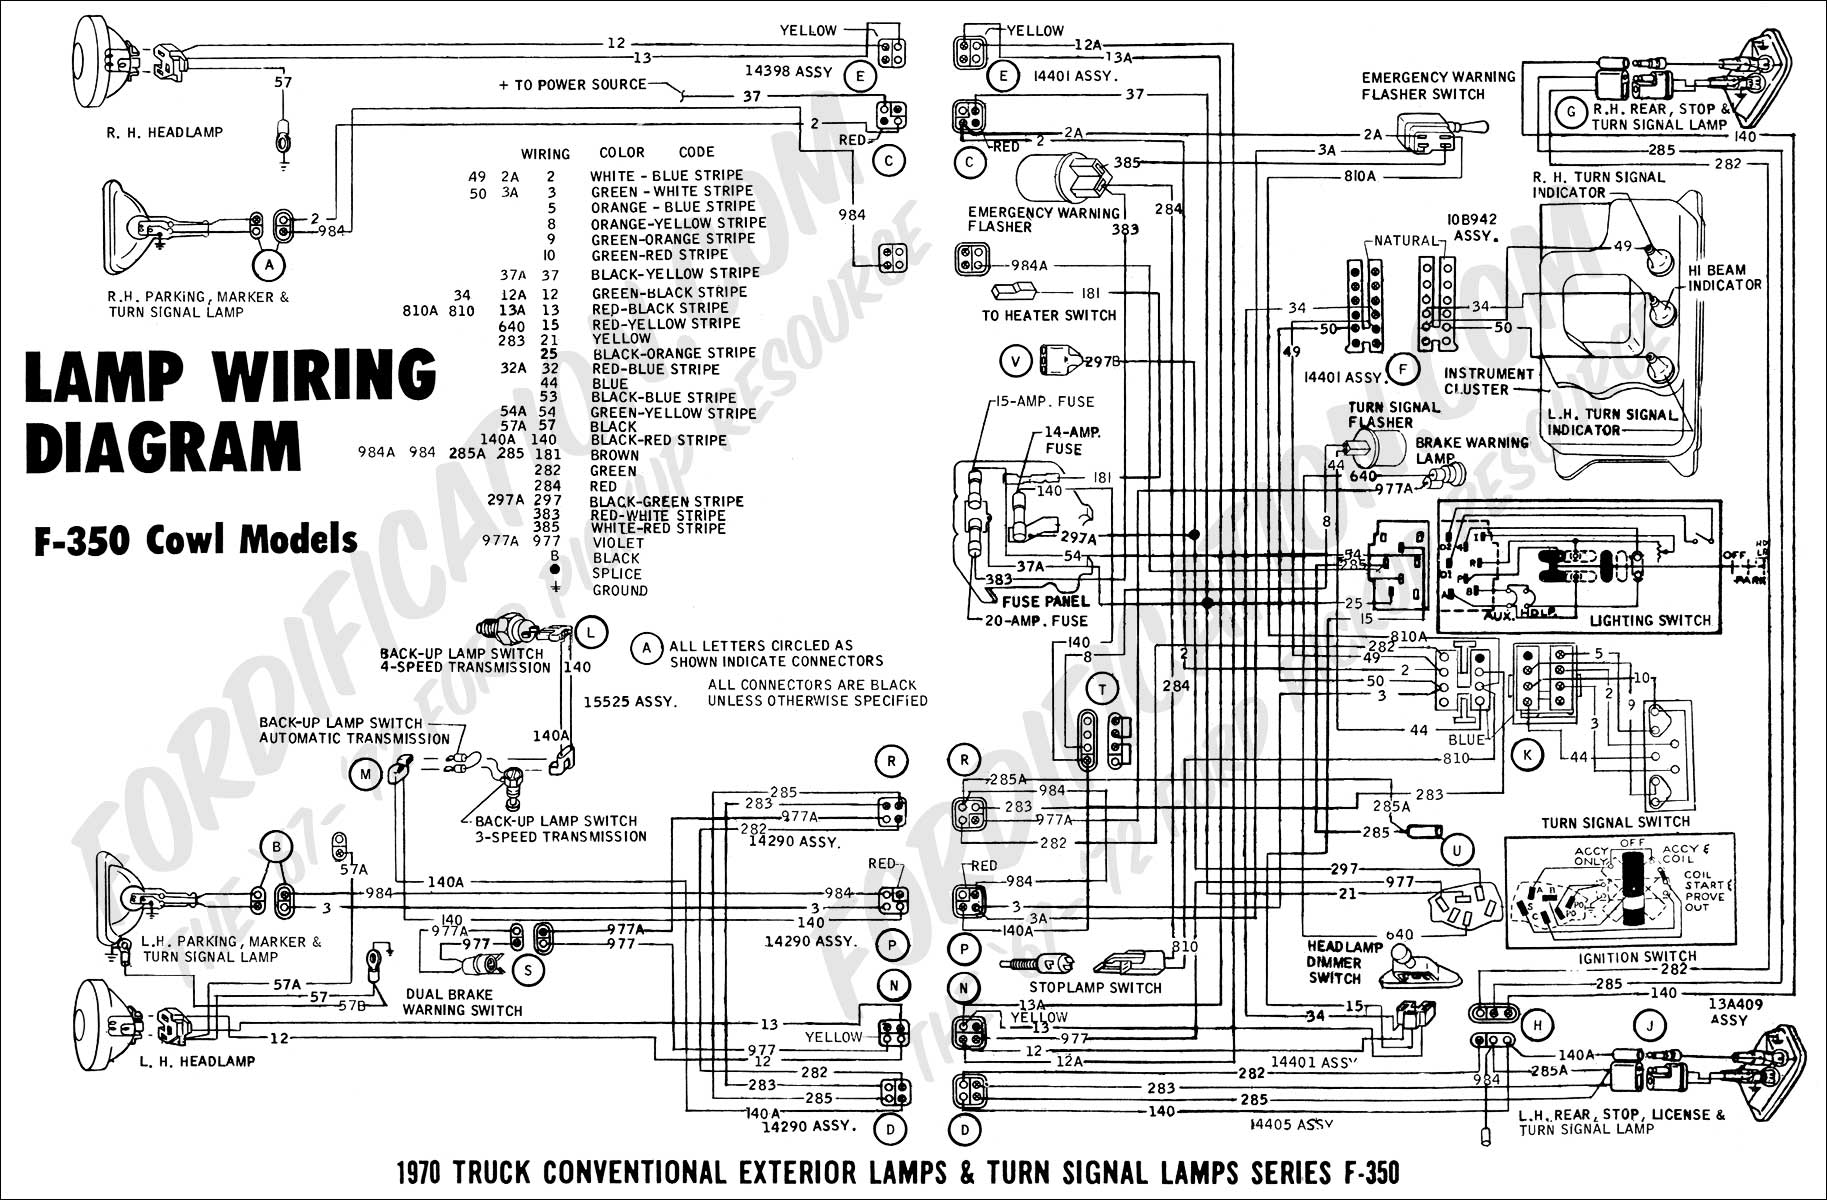 1970 Ford Truck Wiring Diagrams Diy Enthusiasts Bronco Alternator Technical Drawings And Schematics Section H Rh Fordification Com Electrical 1971 F100 Diagram